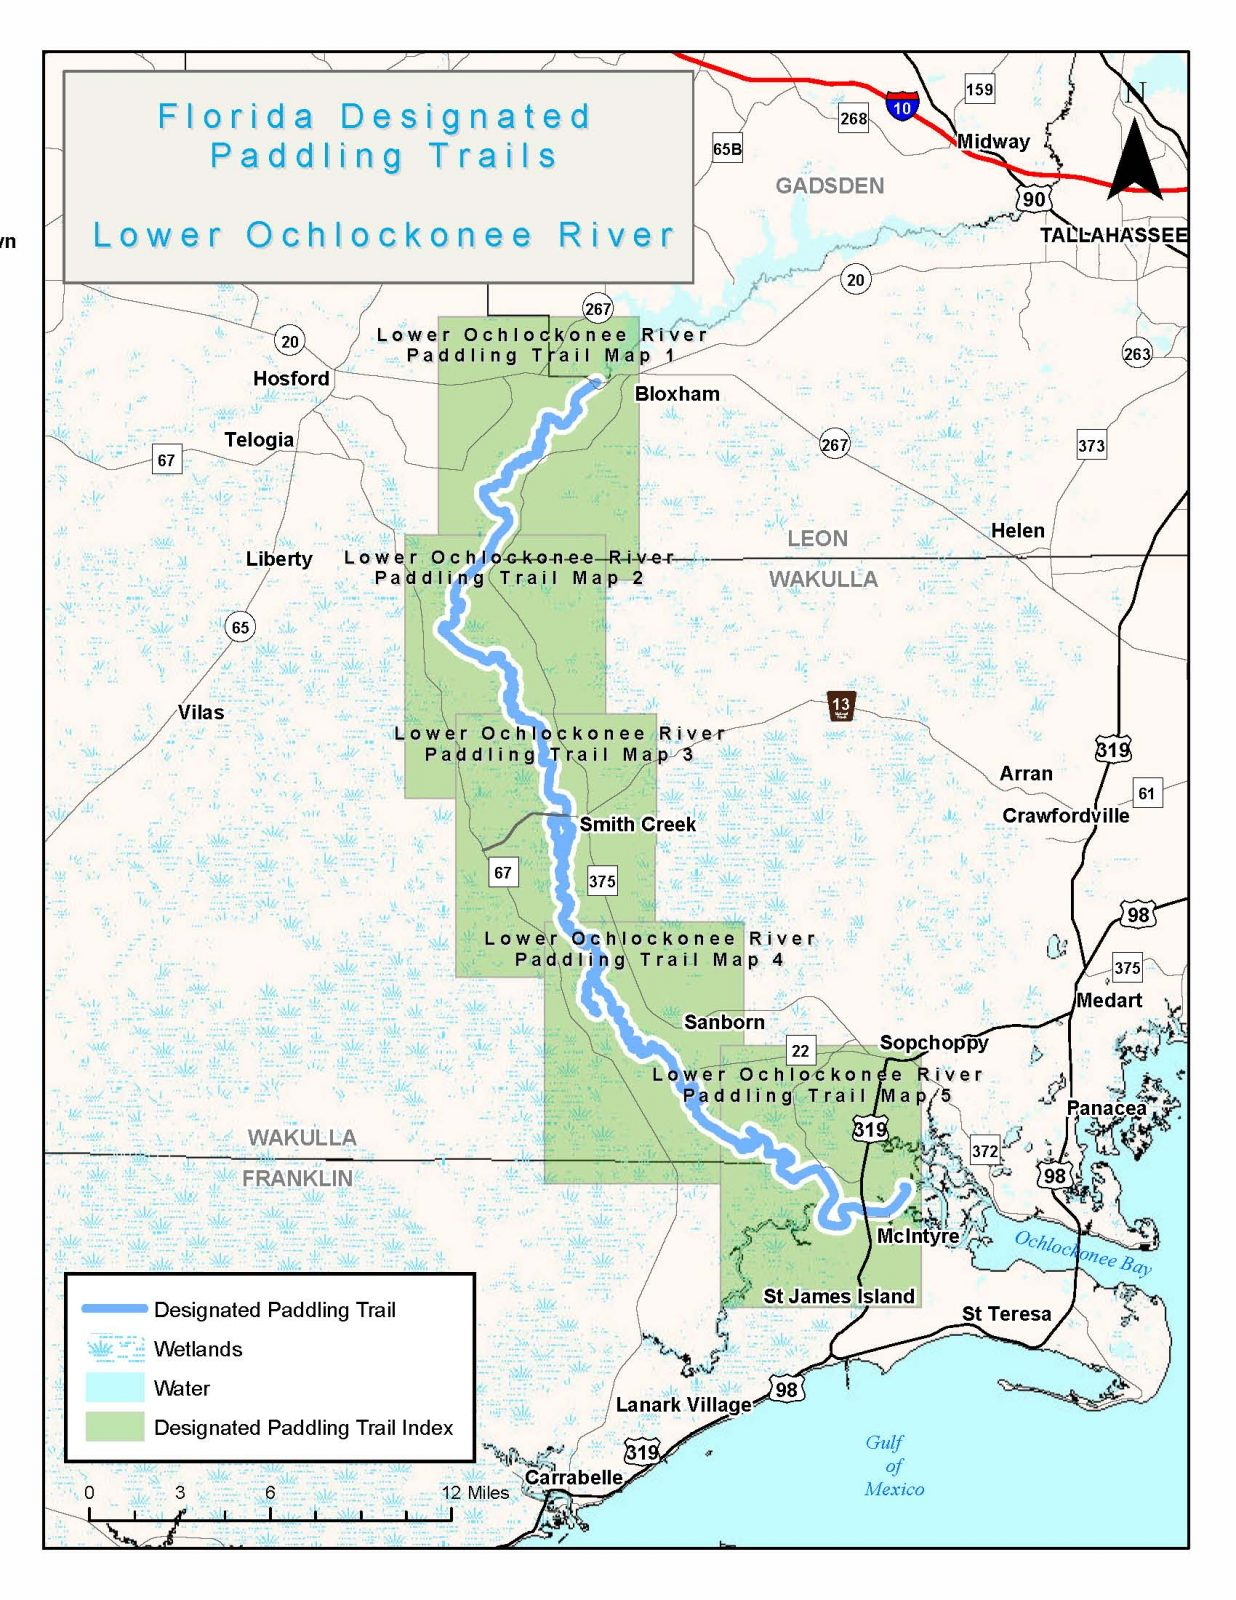 Lower Ochlockonee River